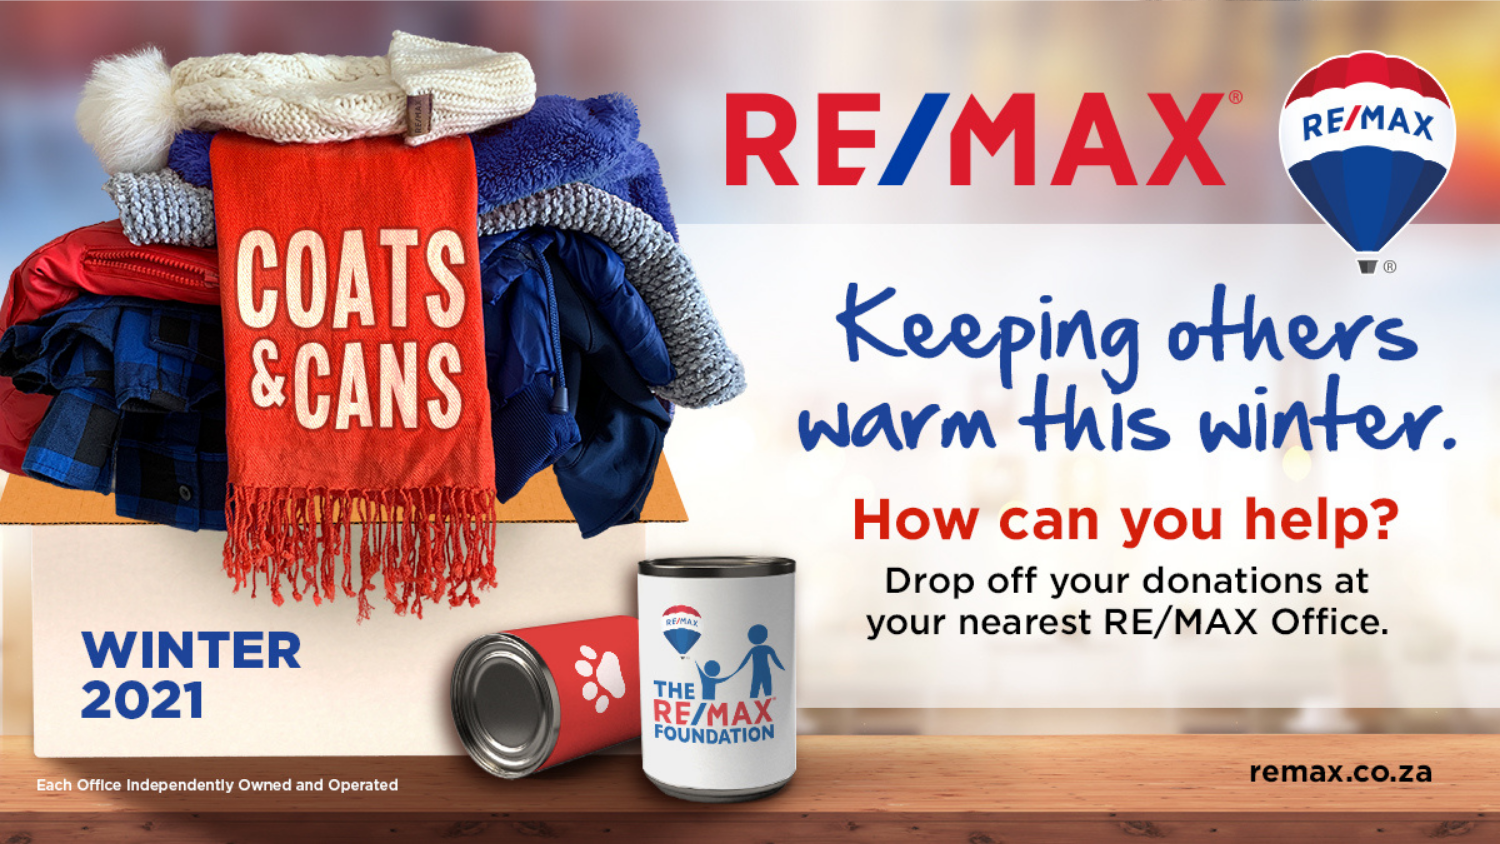 CHARITABLE WAYS TO HELP YOUR COMMUNITY THIS WINTER